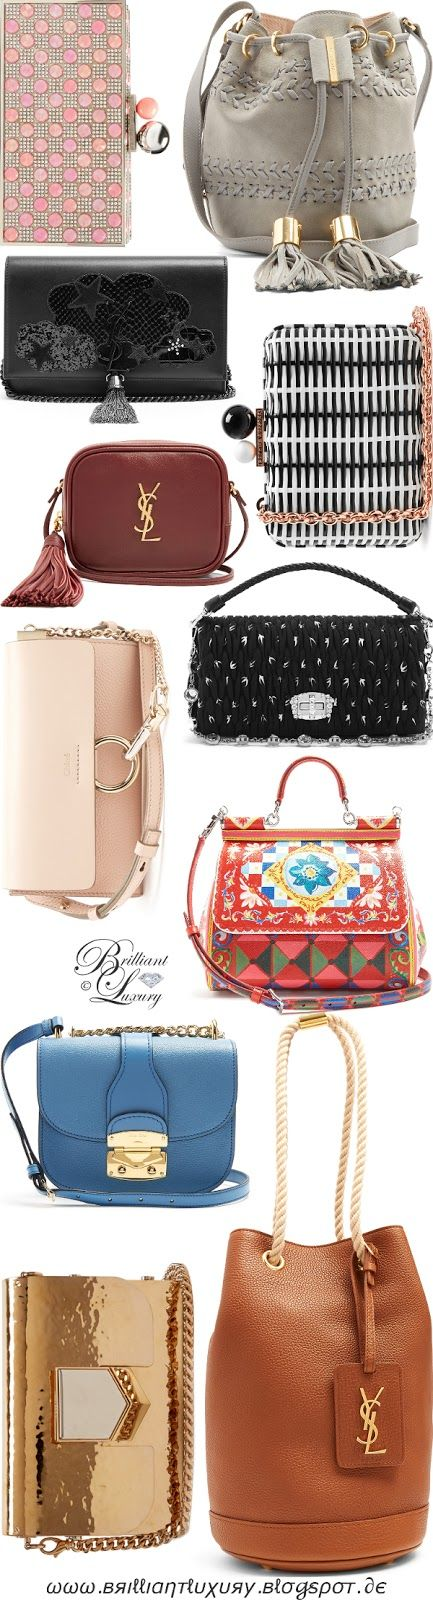 Brilliant Luxury by Emmy DE ♦just in ~ new bags 2017